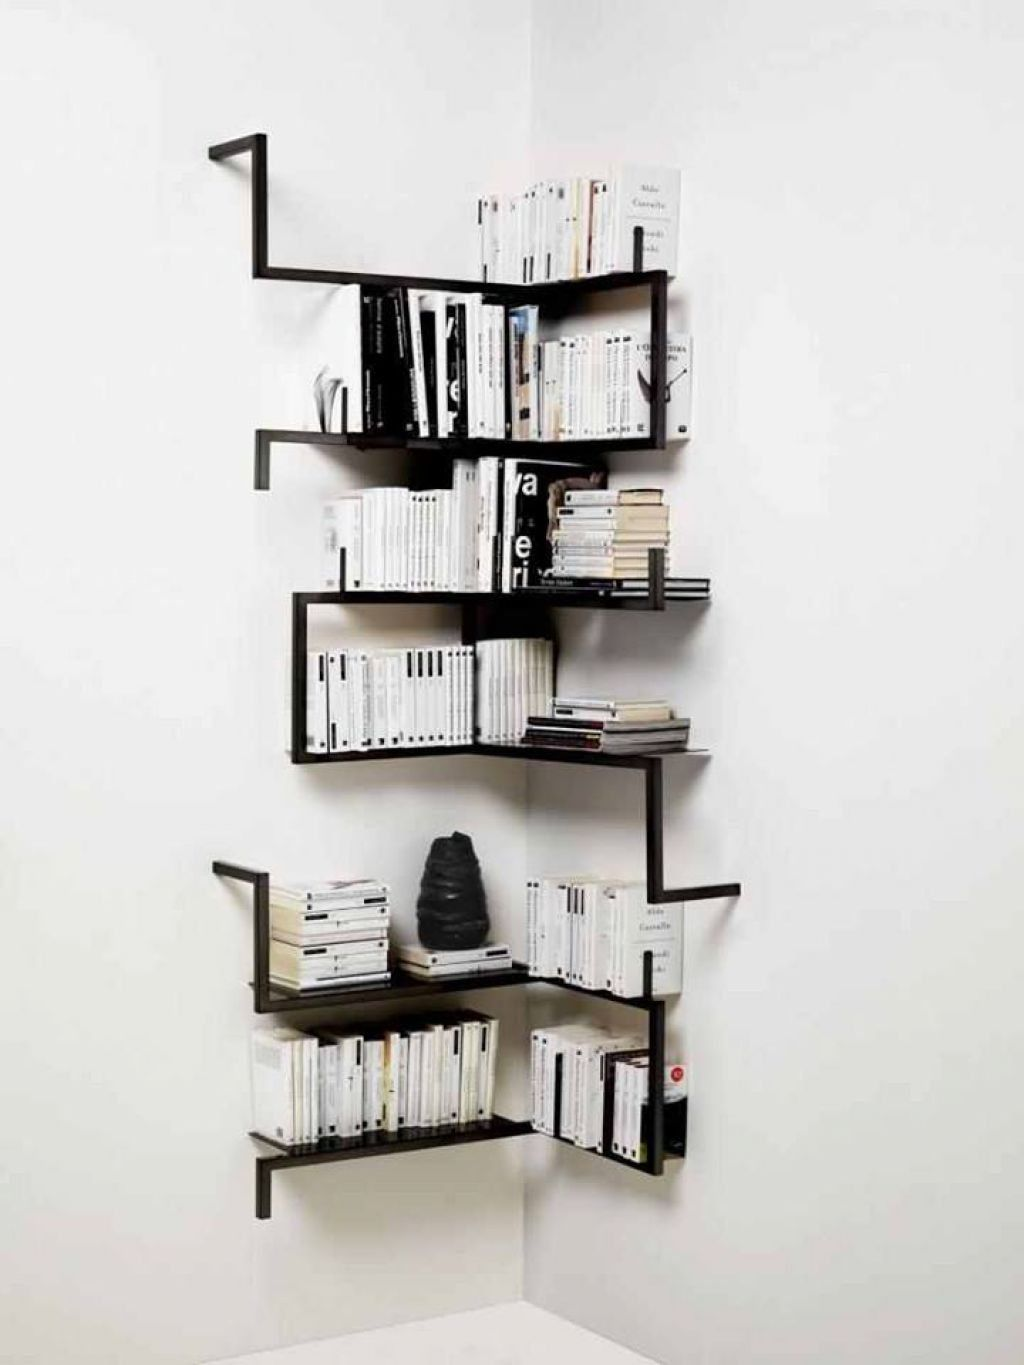 Contemporary Corner Shelves Mounted In The White Walls For Books Storage